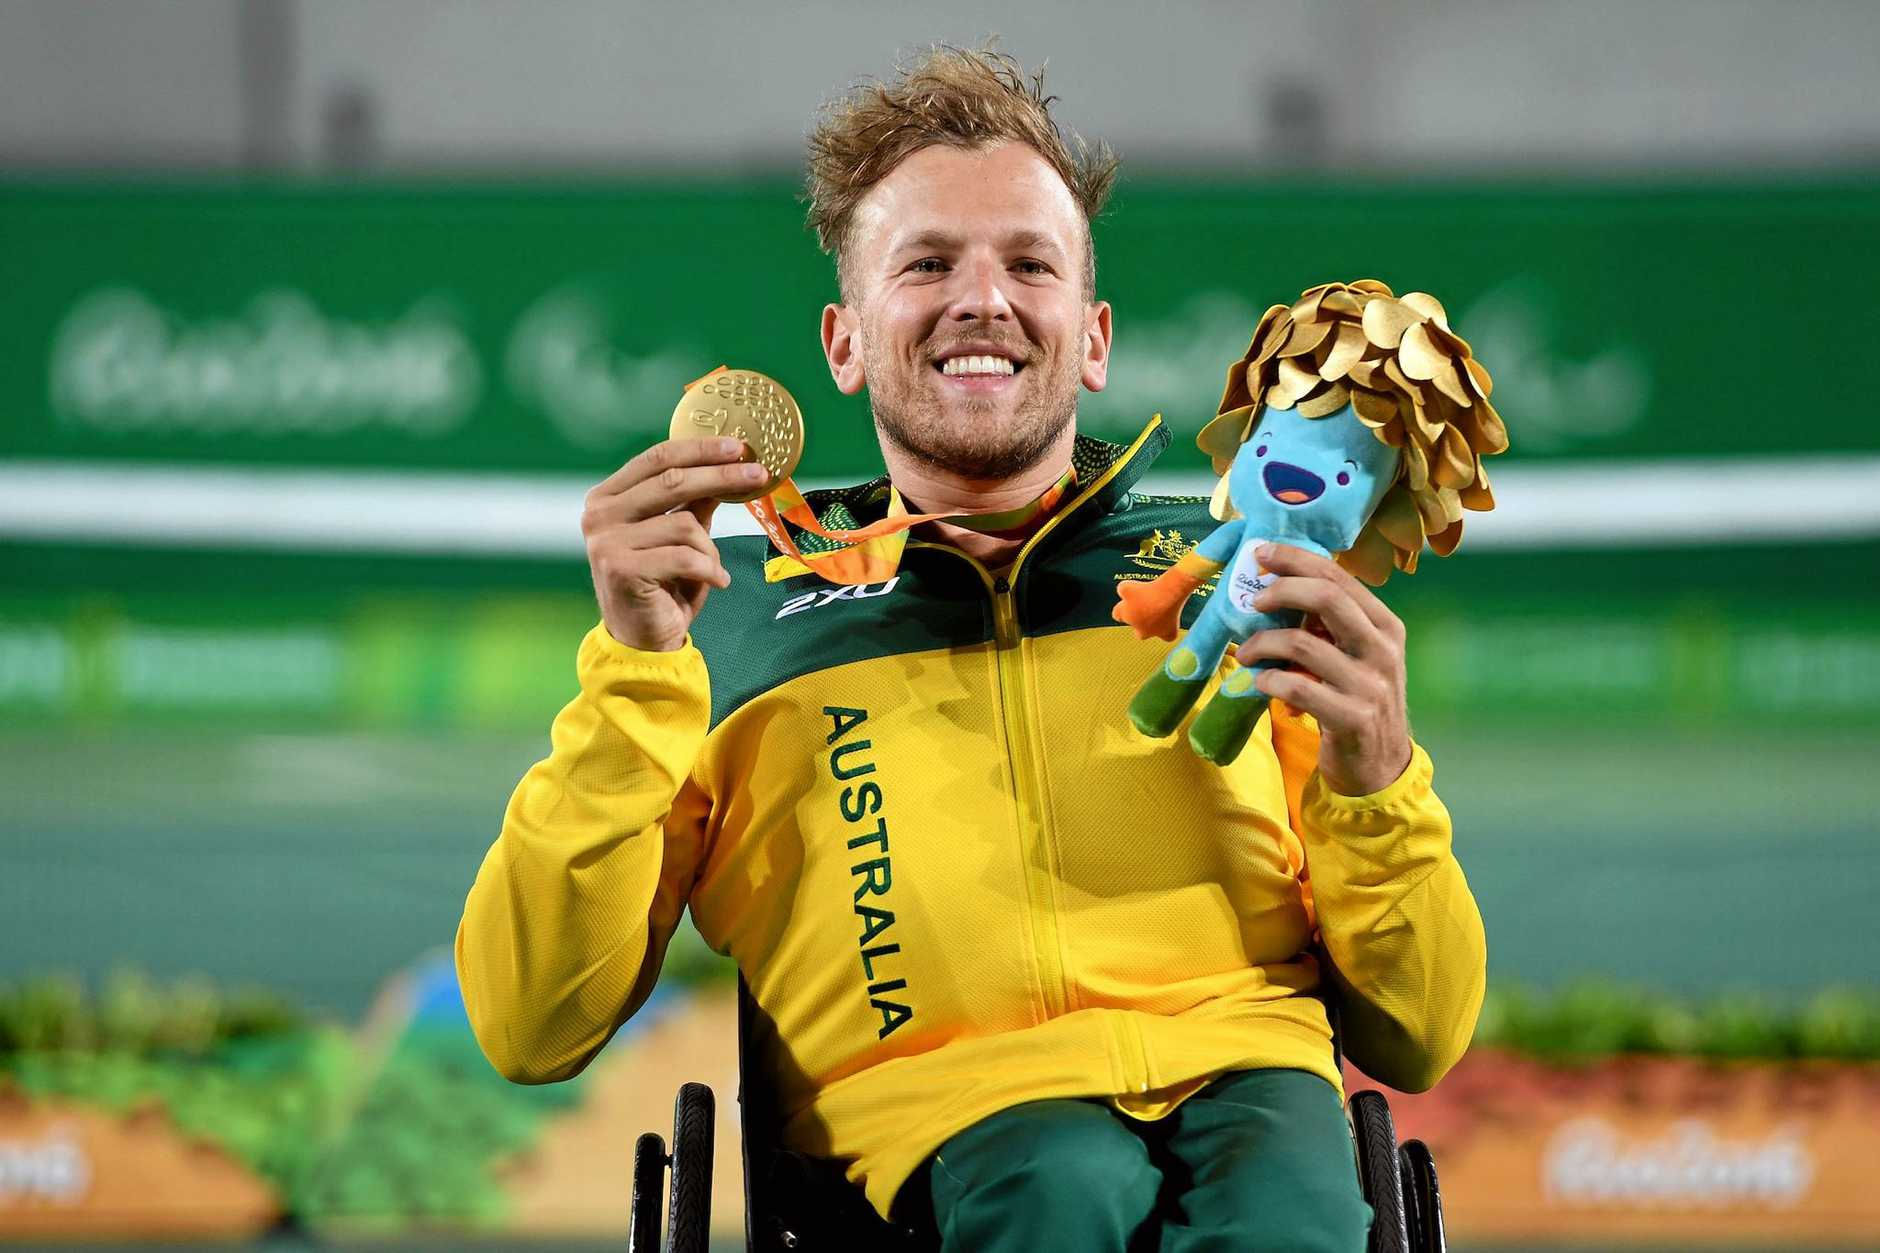 Australian Dylan Alcott shows off his gold medal after deating Andy Lapthorne of Great Britain for the men's quad singles title in Rio.